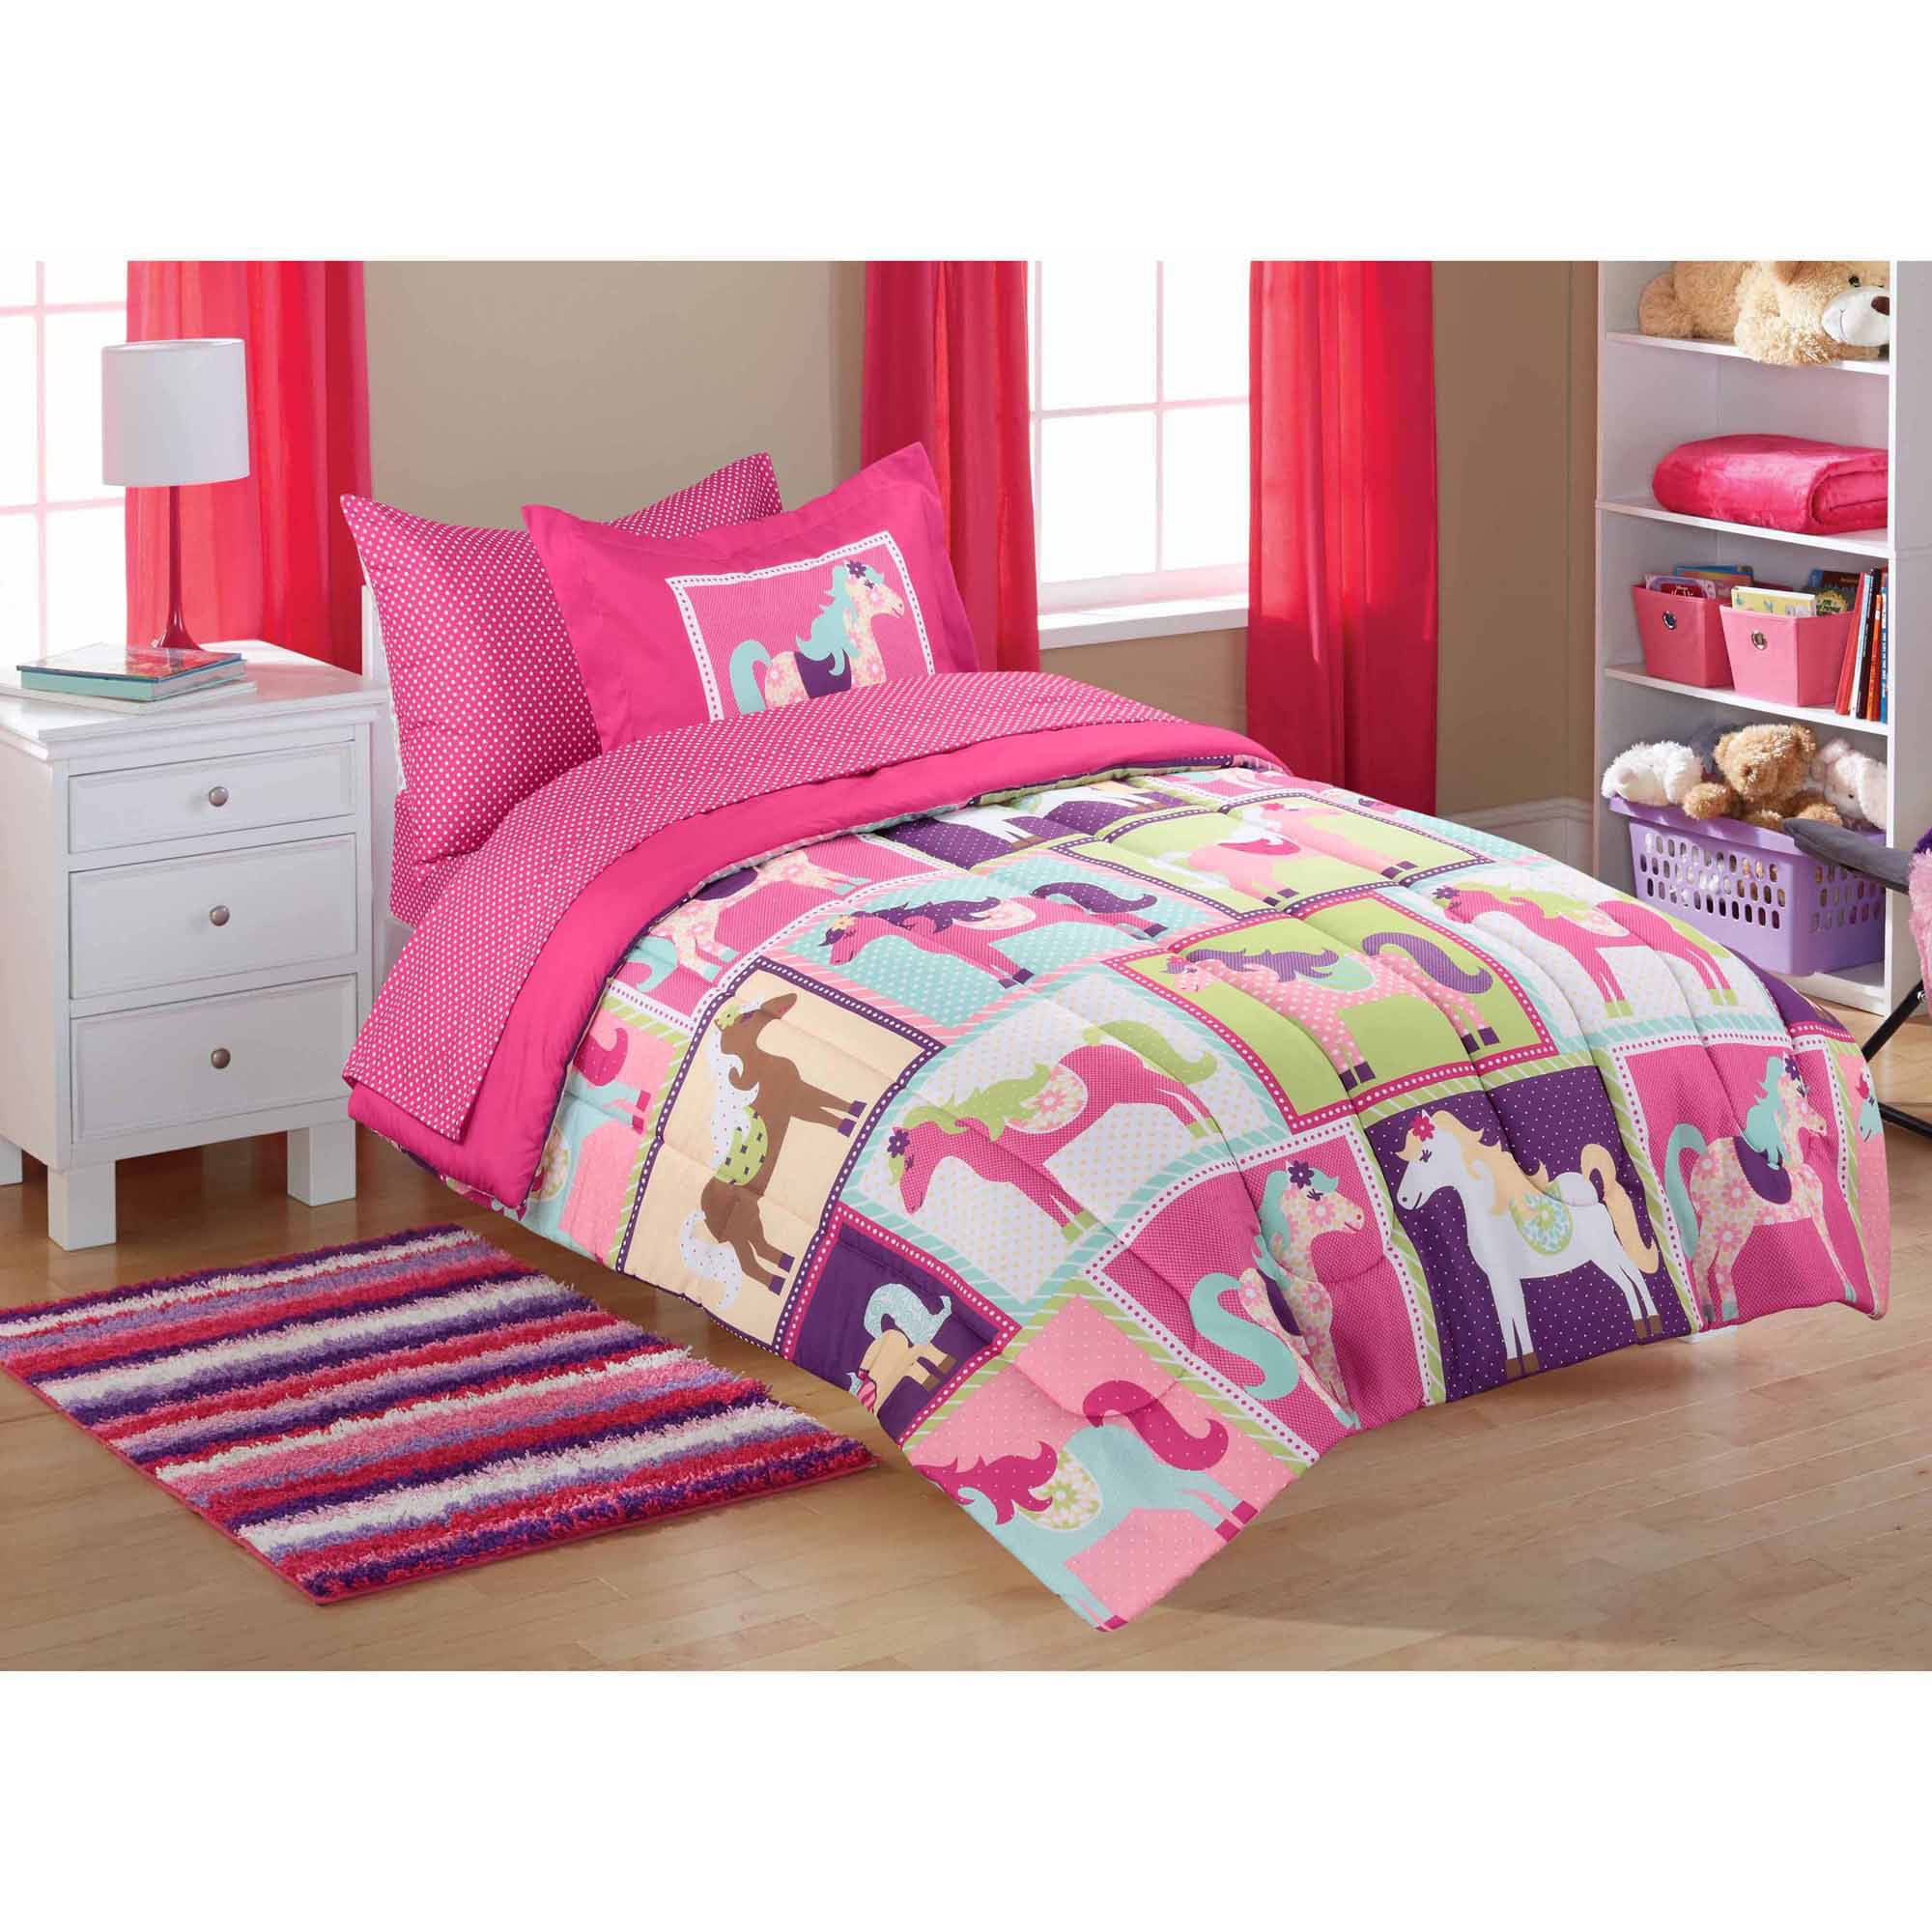 kids twin bed set Mainstays Kids' Coordinated Bed in a Bag, Pink Horsey   Walmart.com kids twin bed set